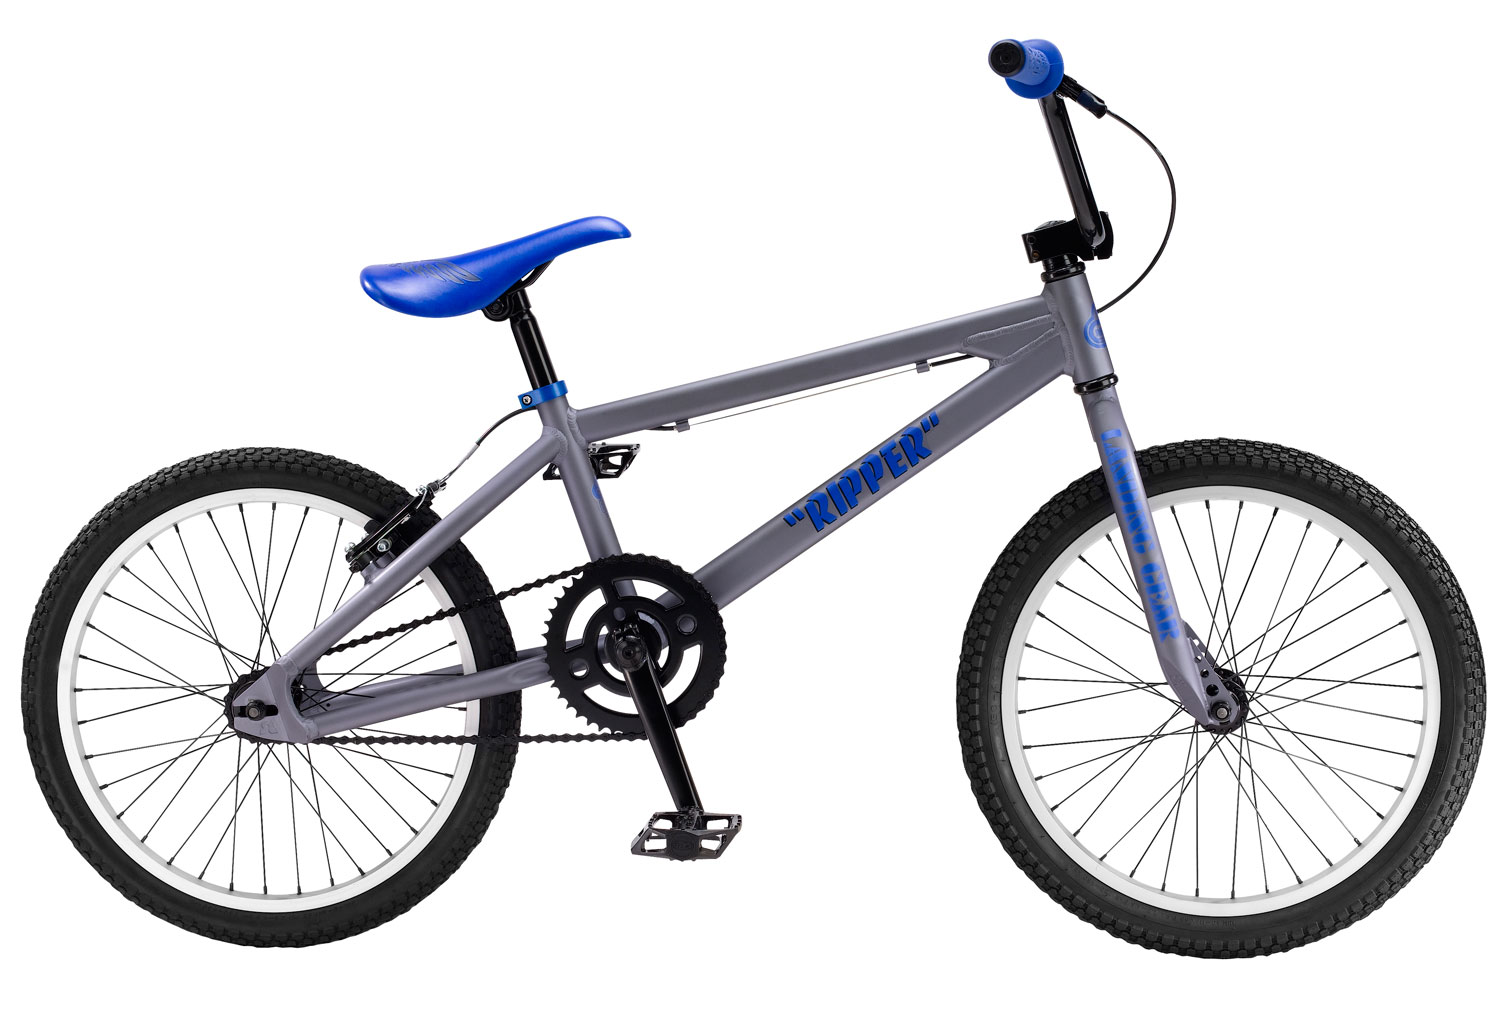 "BMX Shred the course with the SE Ripper BMX Race Bike! It features a 6061 Aluminum Floval Tube to make you light as a feather in air, and a FPD Alloy platform sure to be strong upon landing. It sports SE Racing Alloy 36H Hubs with Alex C1000 Rims, and a 16T Freewheel. See if they can catch you in the fast lane with SE Racing Front Load Alloy, Wing Grip, 27.2 mm Straight Post, and custom Imprinted Racing Cover. Stopping is certainly no issue with the threadless 1 1/8"" Tange, and the Rush V-Brake and 2 Finger Alloys. This hot package weighs a total of 23.30lbs. and is sure to turn some heads at the track!Key Features of the SE Ripper BMX Race Bike: 6061 Aluminum Floval Tubing Fork: Landing Gear SE 3-pc Cr-Mo, 170mm, Euro Sealed Bearing, 43T FPD Alloy Platform, Cr-Mo Axle KMC Z410 Chain SE Racing Alloy 36H Hubs w/Alex C1000 Rims, 16T Freewheel Kenda K-Rad, 1.95"" F, 1.75"" R Rush V-Brake Rush 2 Finger Alloy Tange 1-1/8"" Threadless SE Wing Bar, 25.5 x 7"" SE Racing Front Load Alloy SE Racing Wing Grip SE Racing w/ Custom Imprinted Cover SE Racing Straight Post, 27.2mm Race Plate, SE Plastic Grip End Caps 23.30lbs / 10.60kg - $259.95"